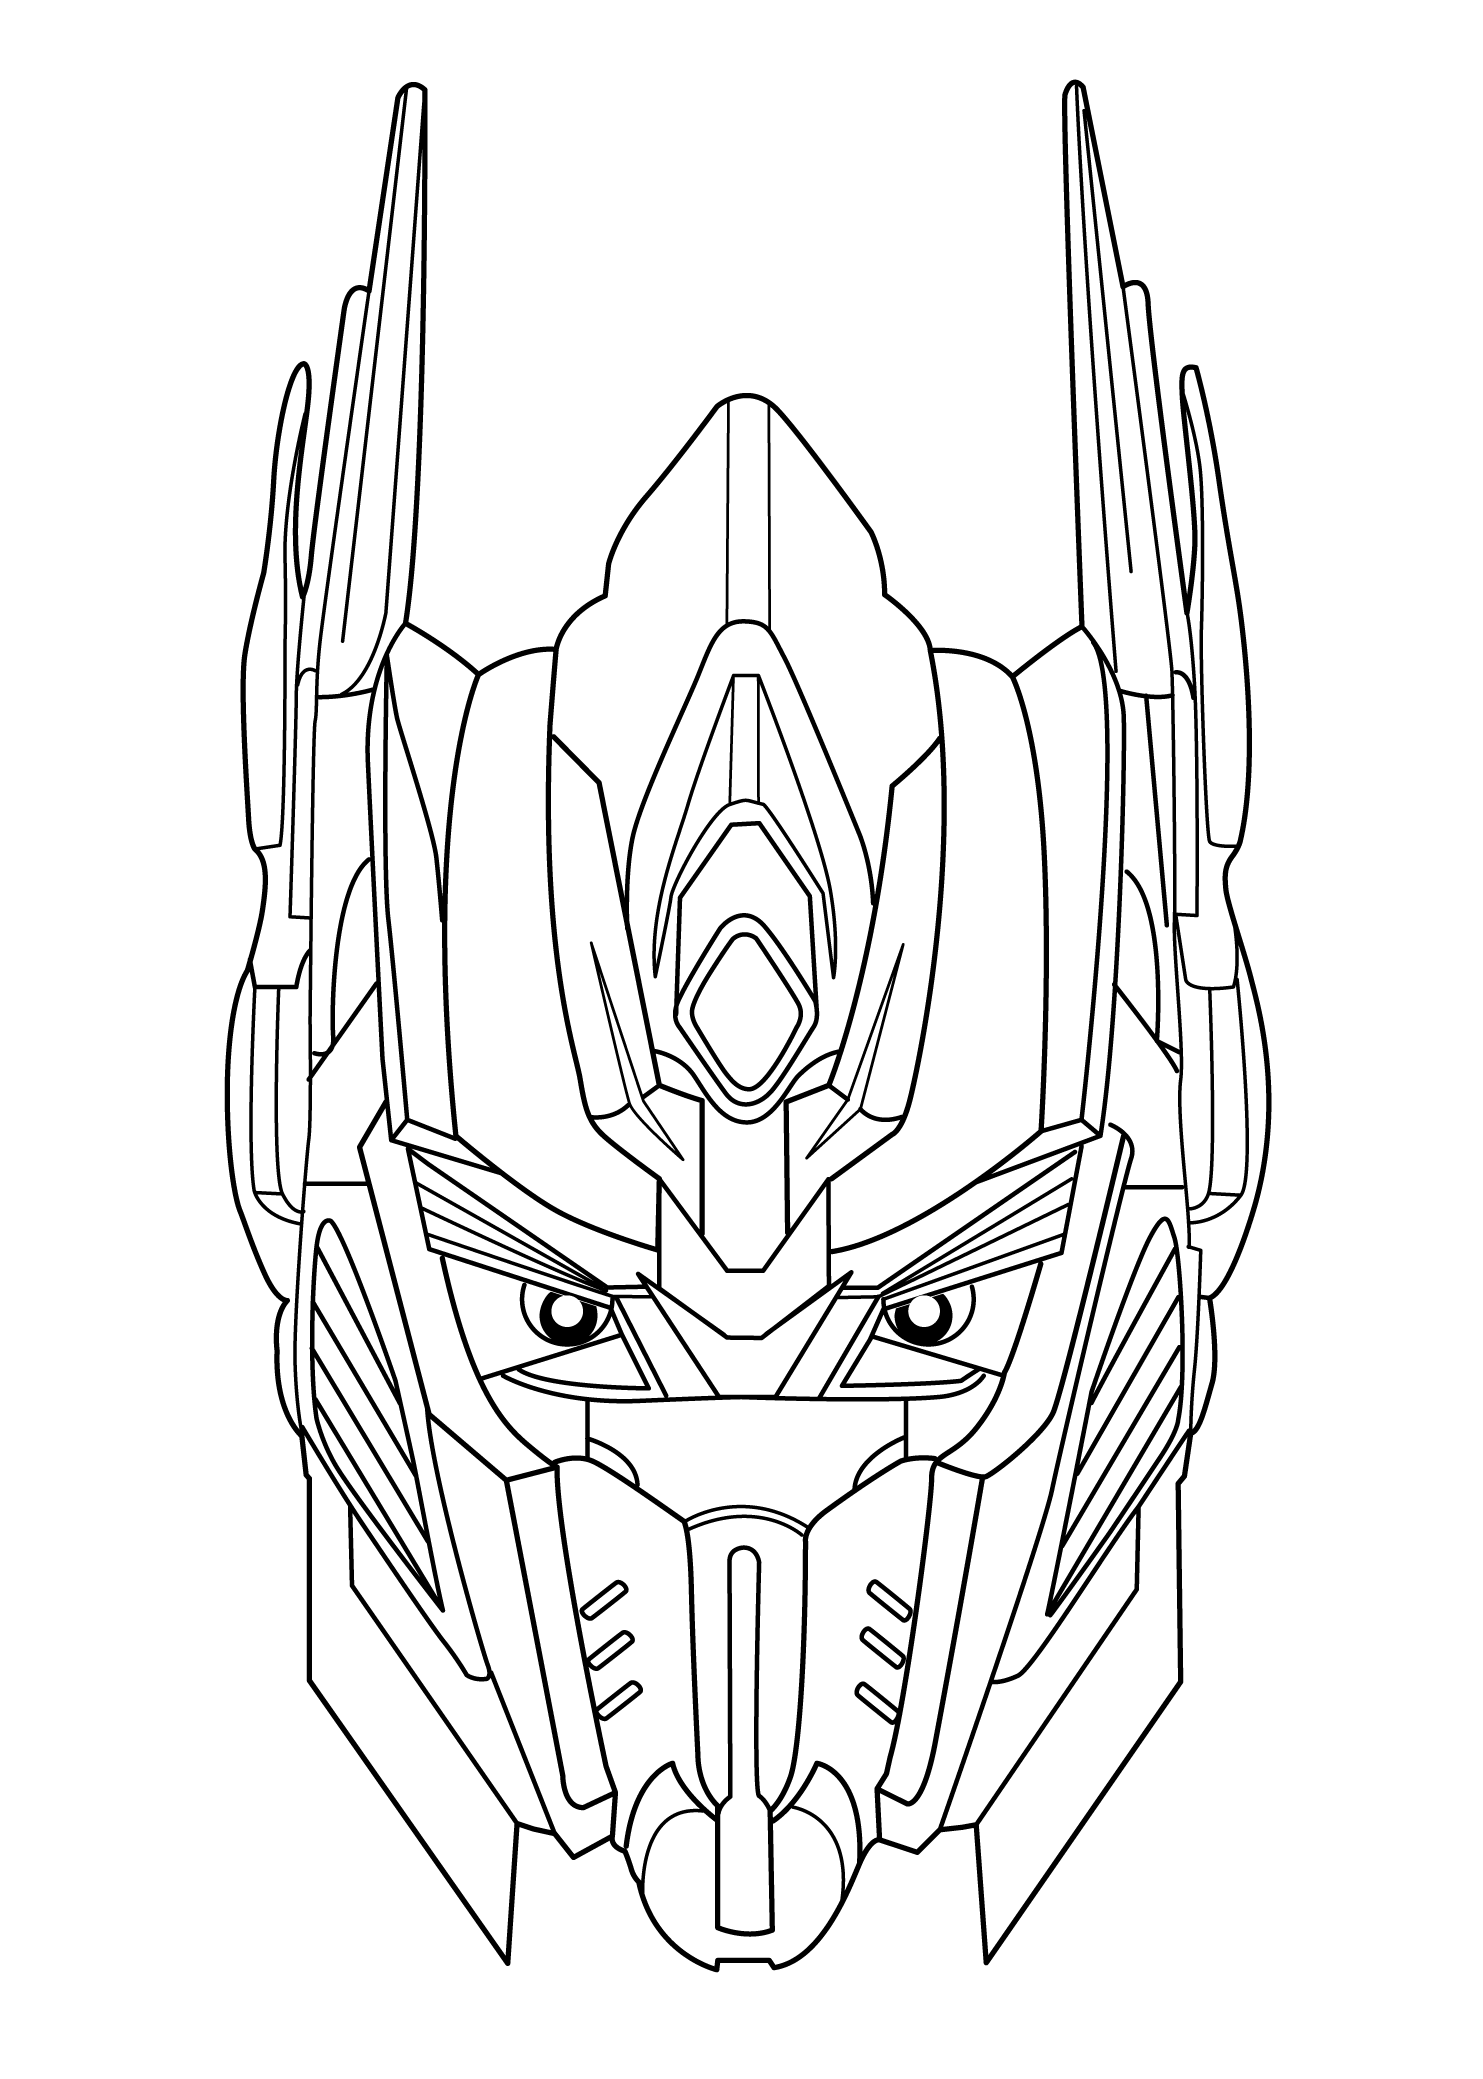 coloring pages for kids - Optimus Prime Face Coloring Pages